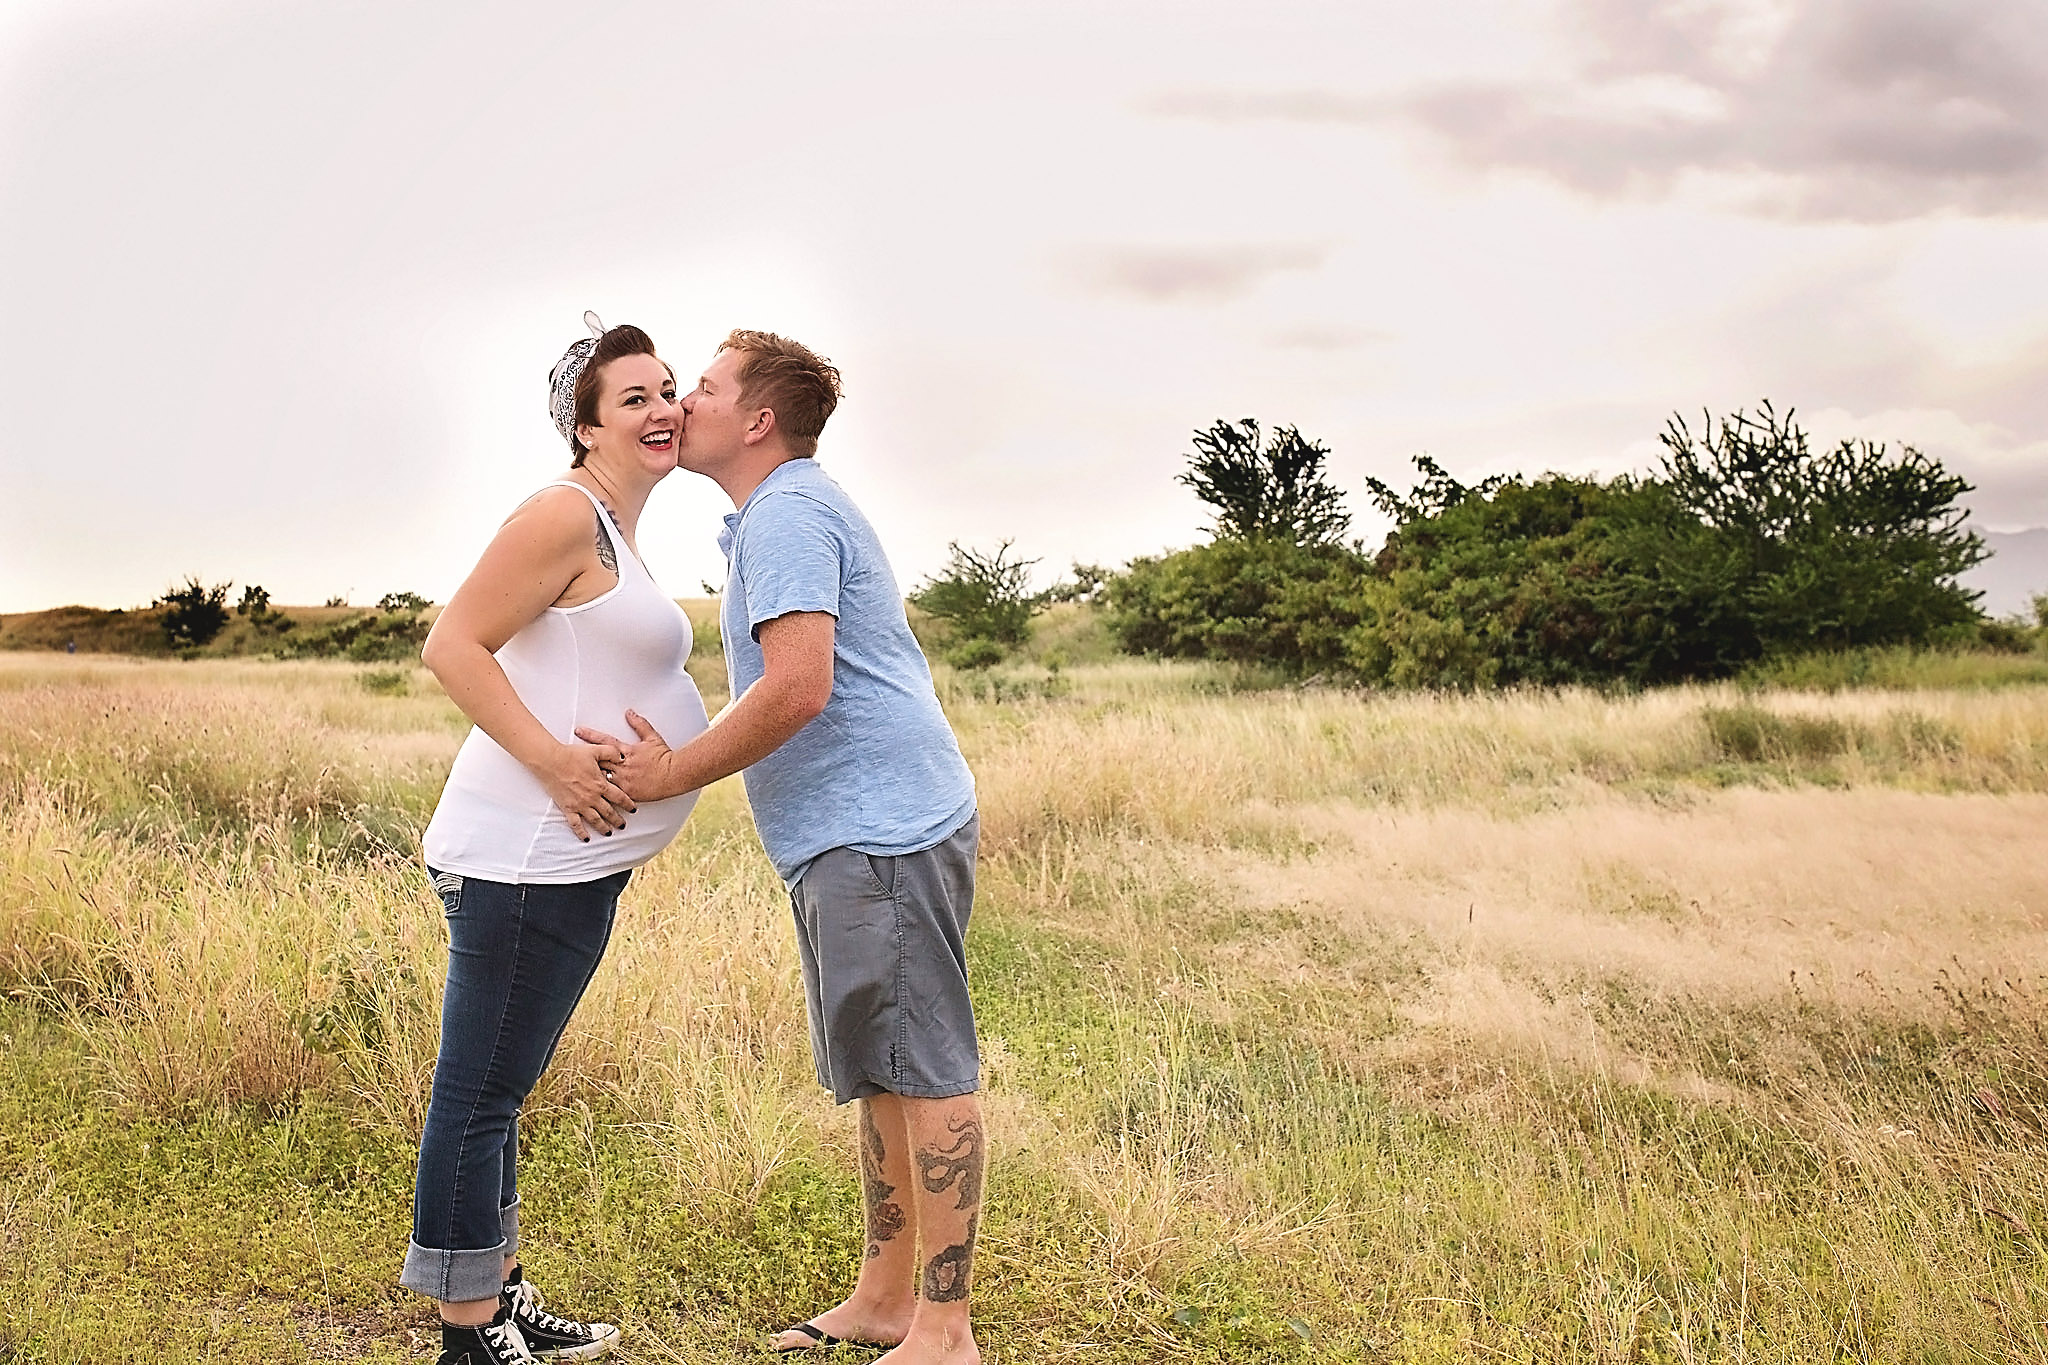 Husband kissing his pregnant wife's cheeck while both have hands placed on her belly.